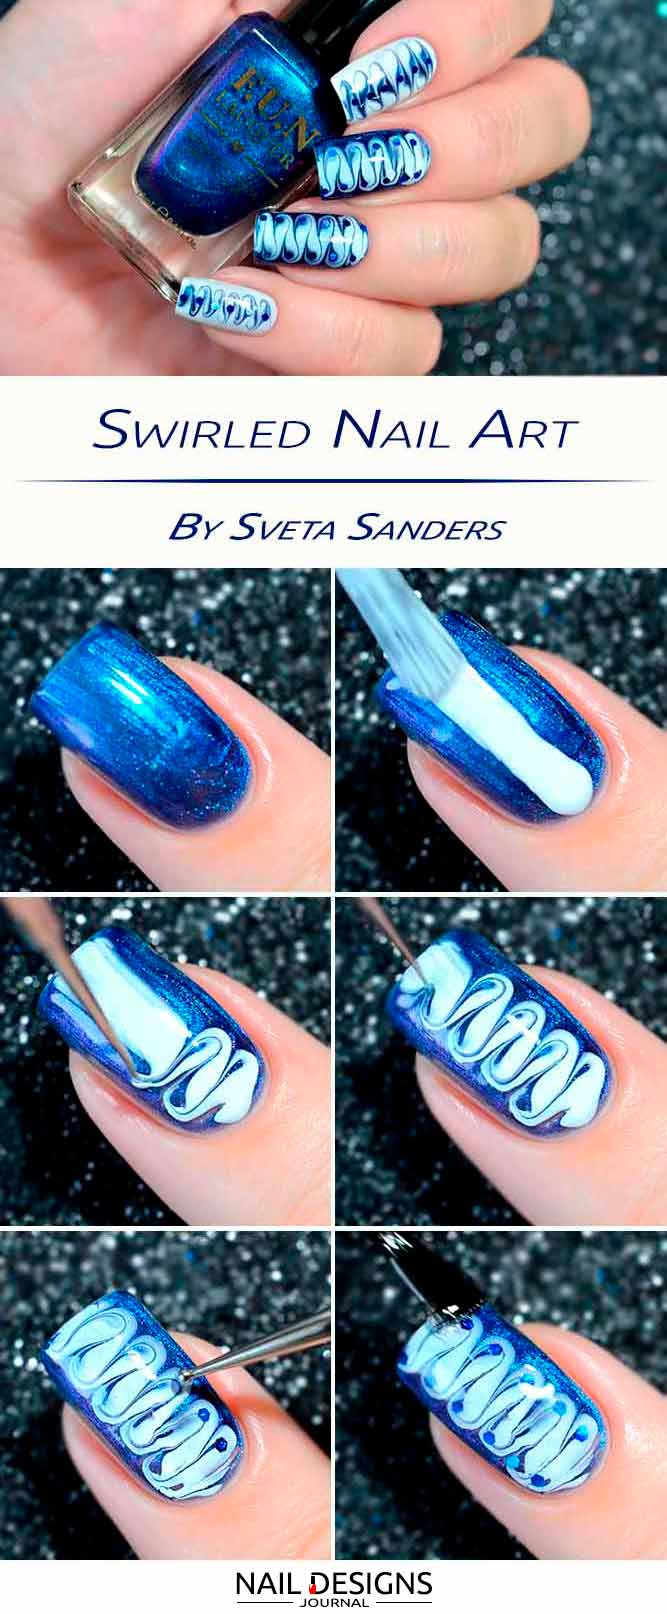 Quick Guide to 15 Stylish Yet Simple Nail Designs - 15 Beautiful And Simple Nail Designs NailDesignsJournal.com